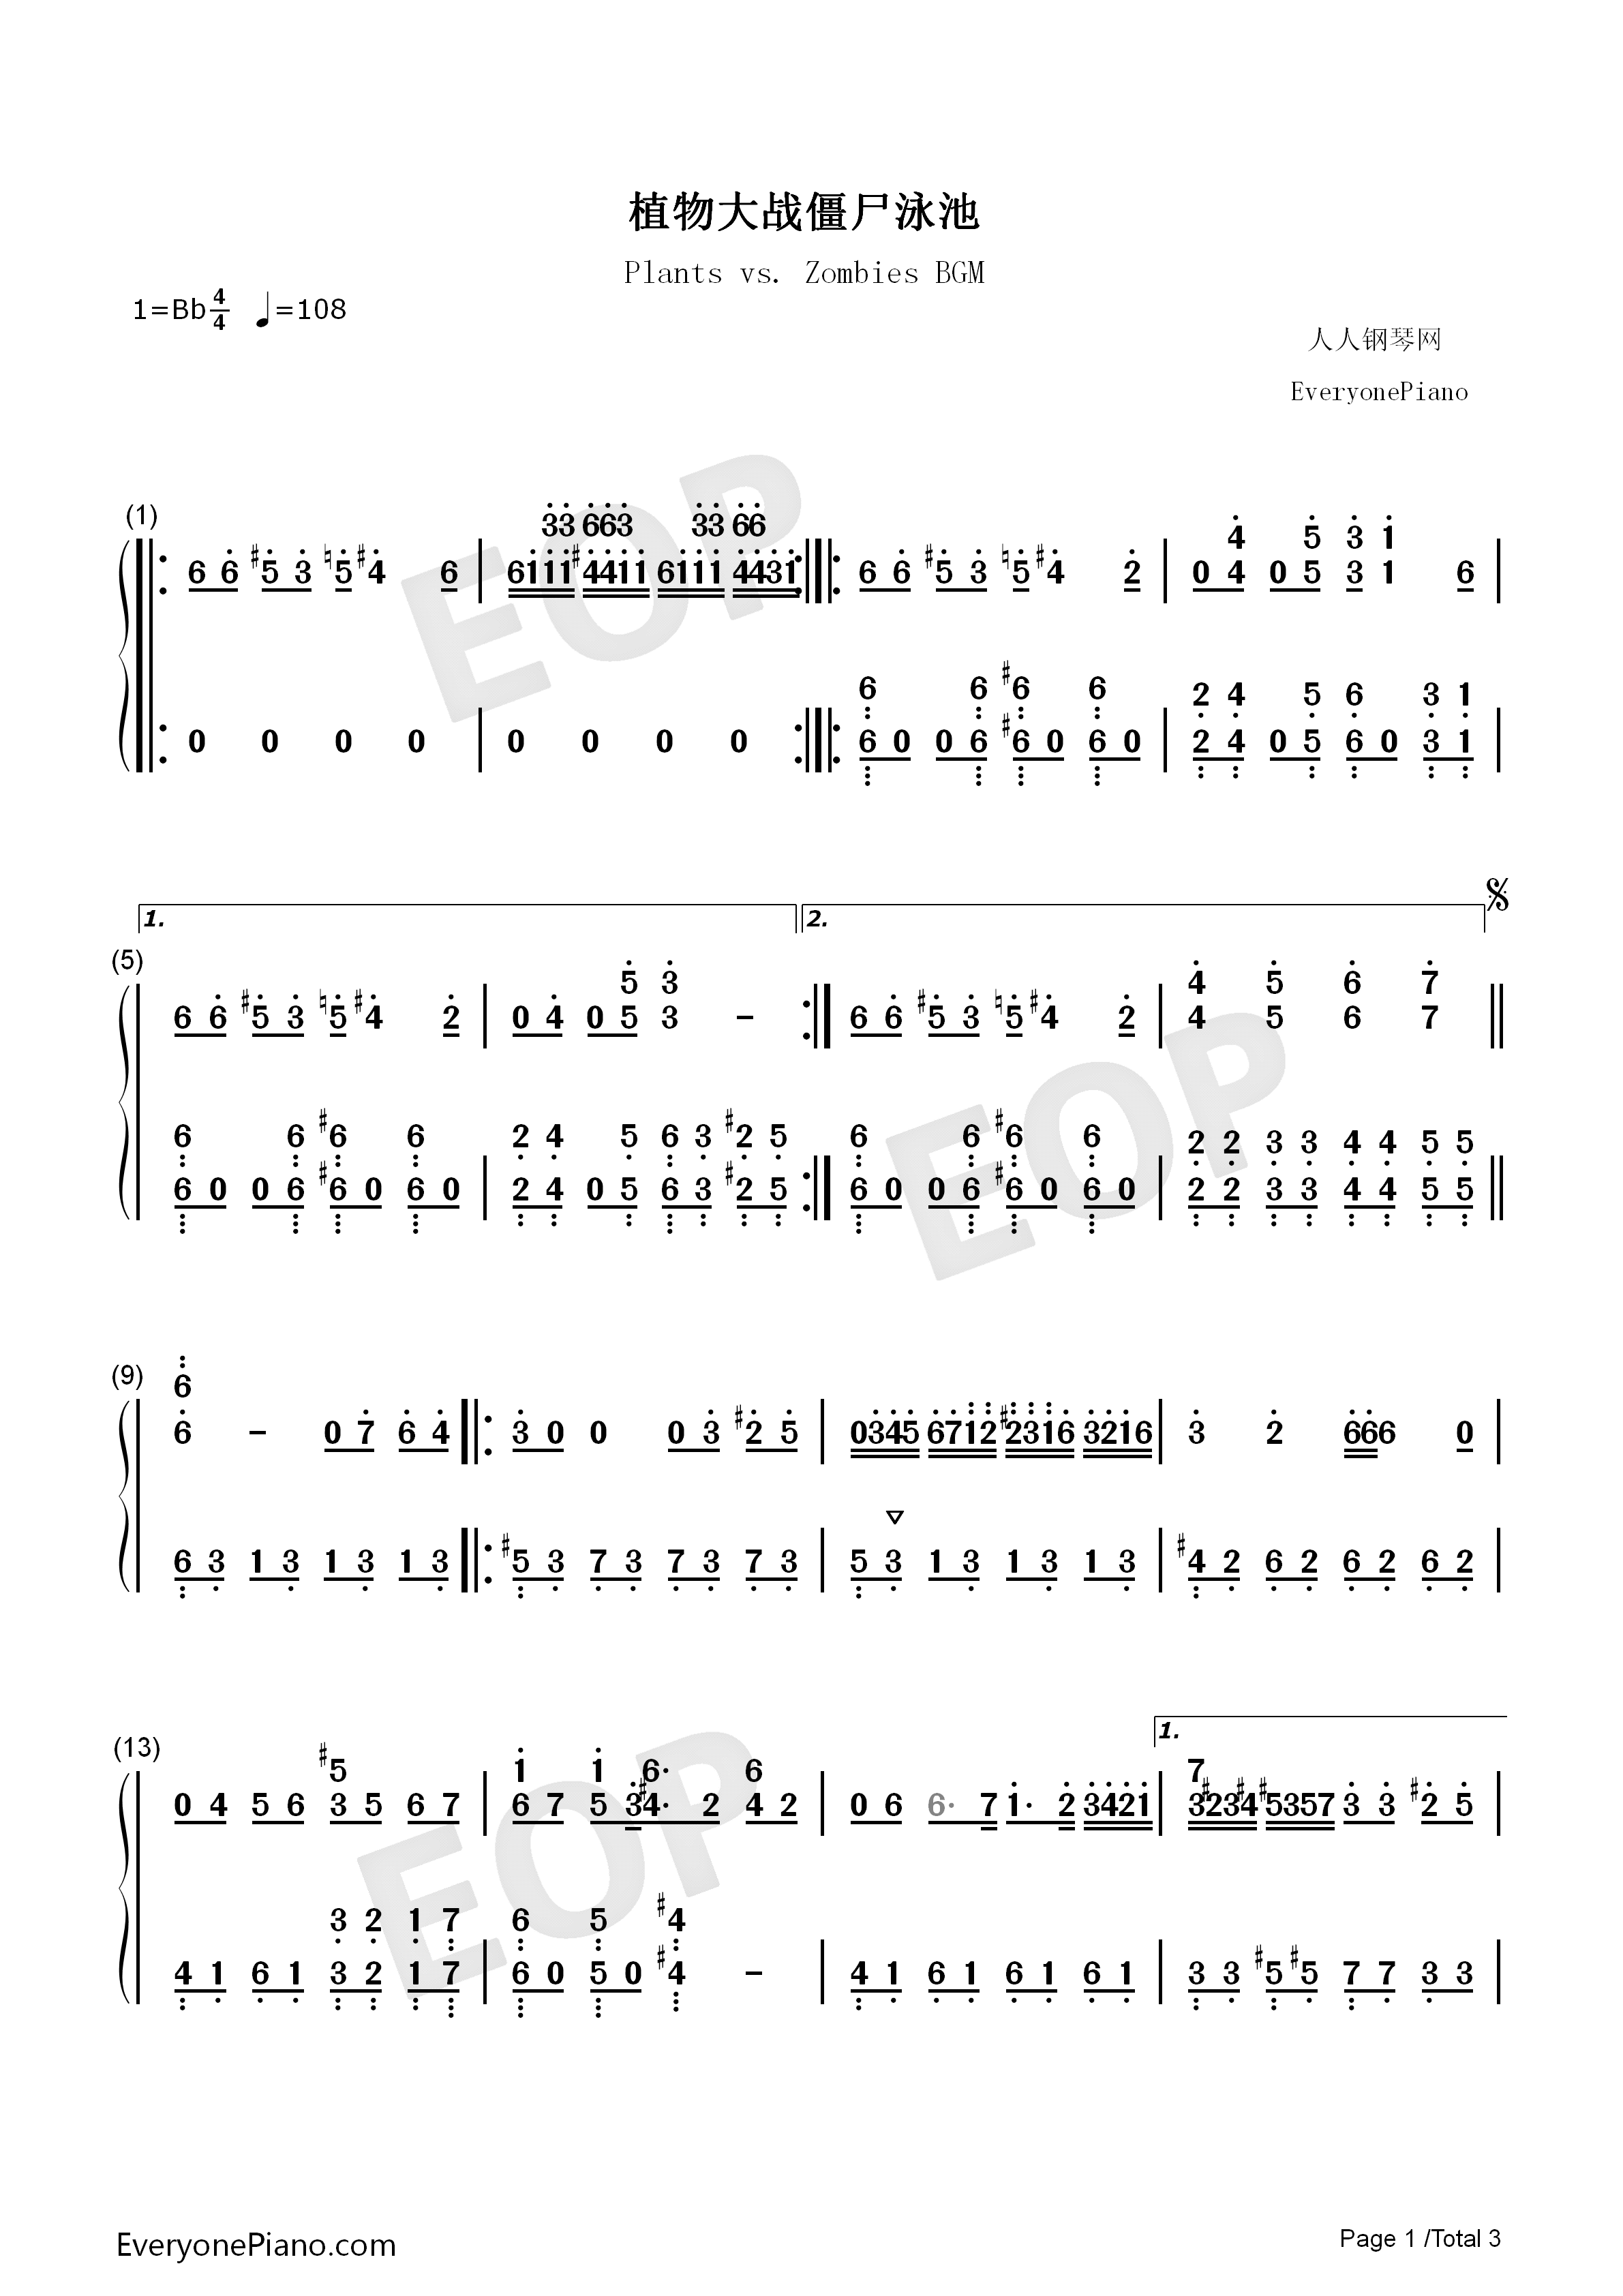 Plants vs. Zombies BGM Numbered Musical Notation Preview 1-Free Piano Sheet Music u0026 Piano Chords